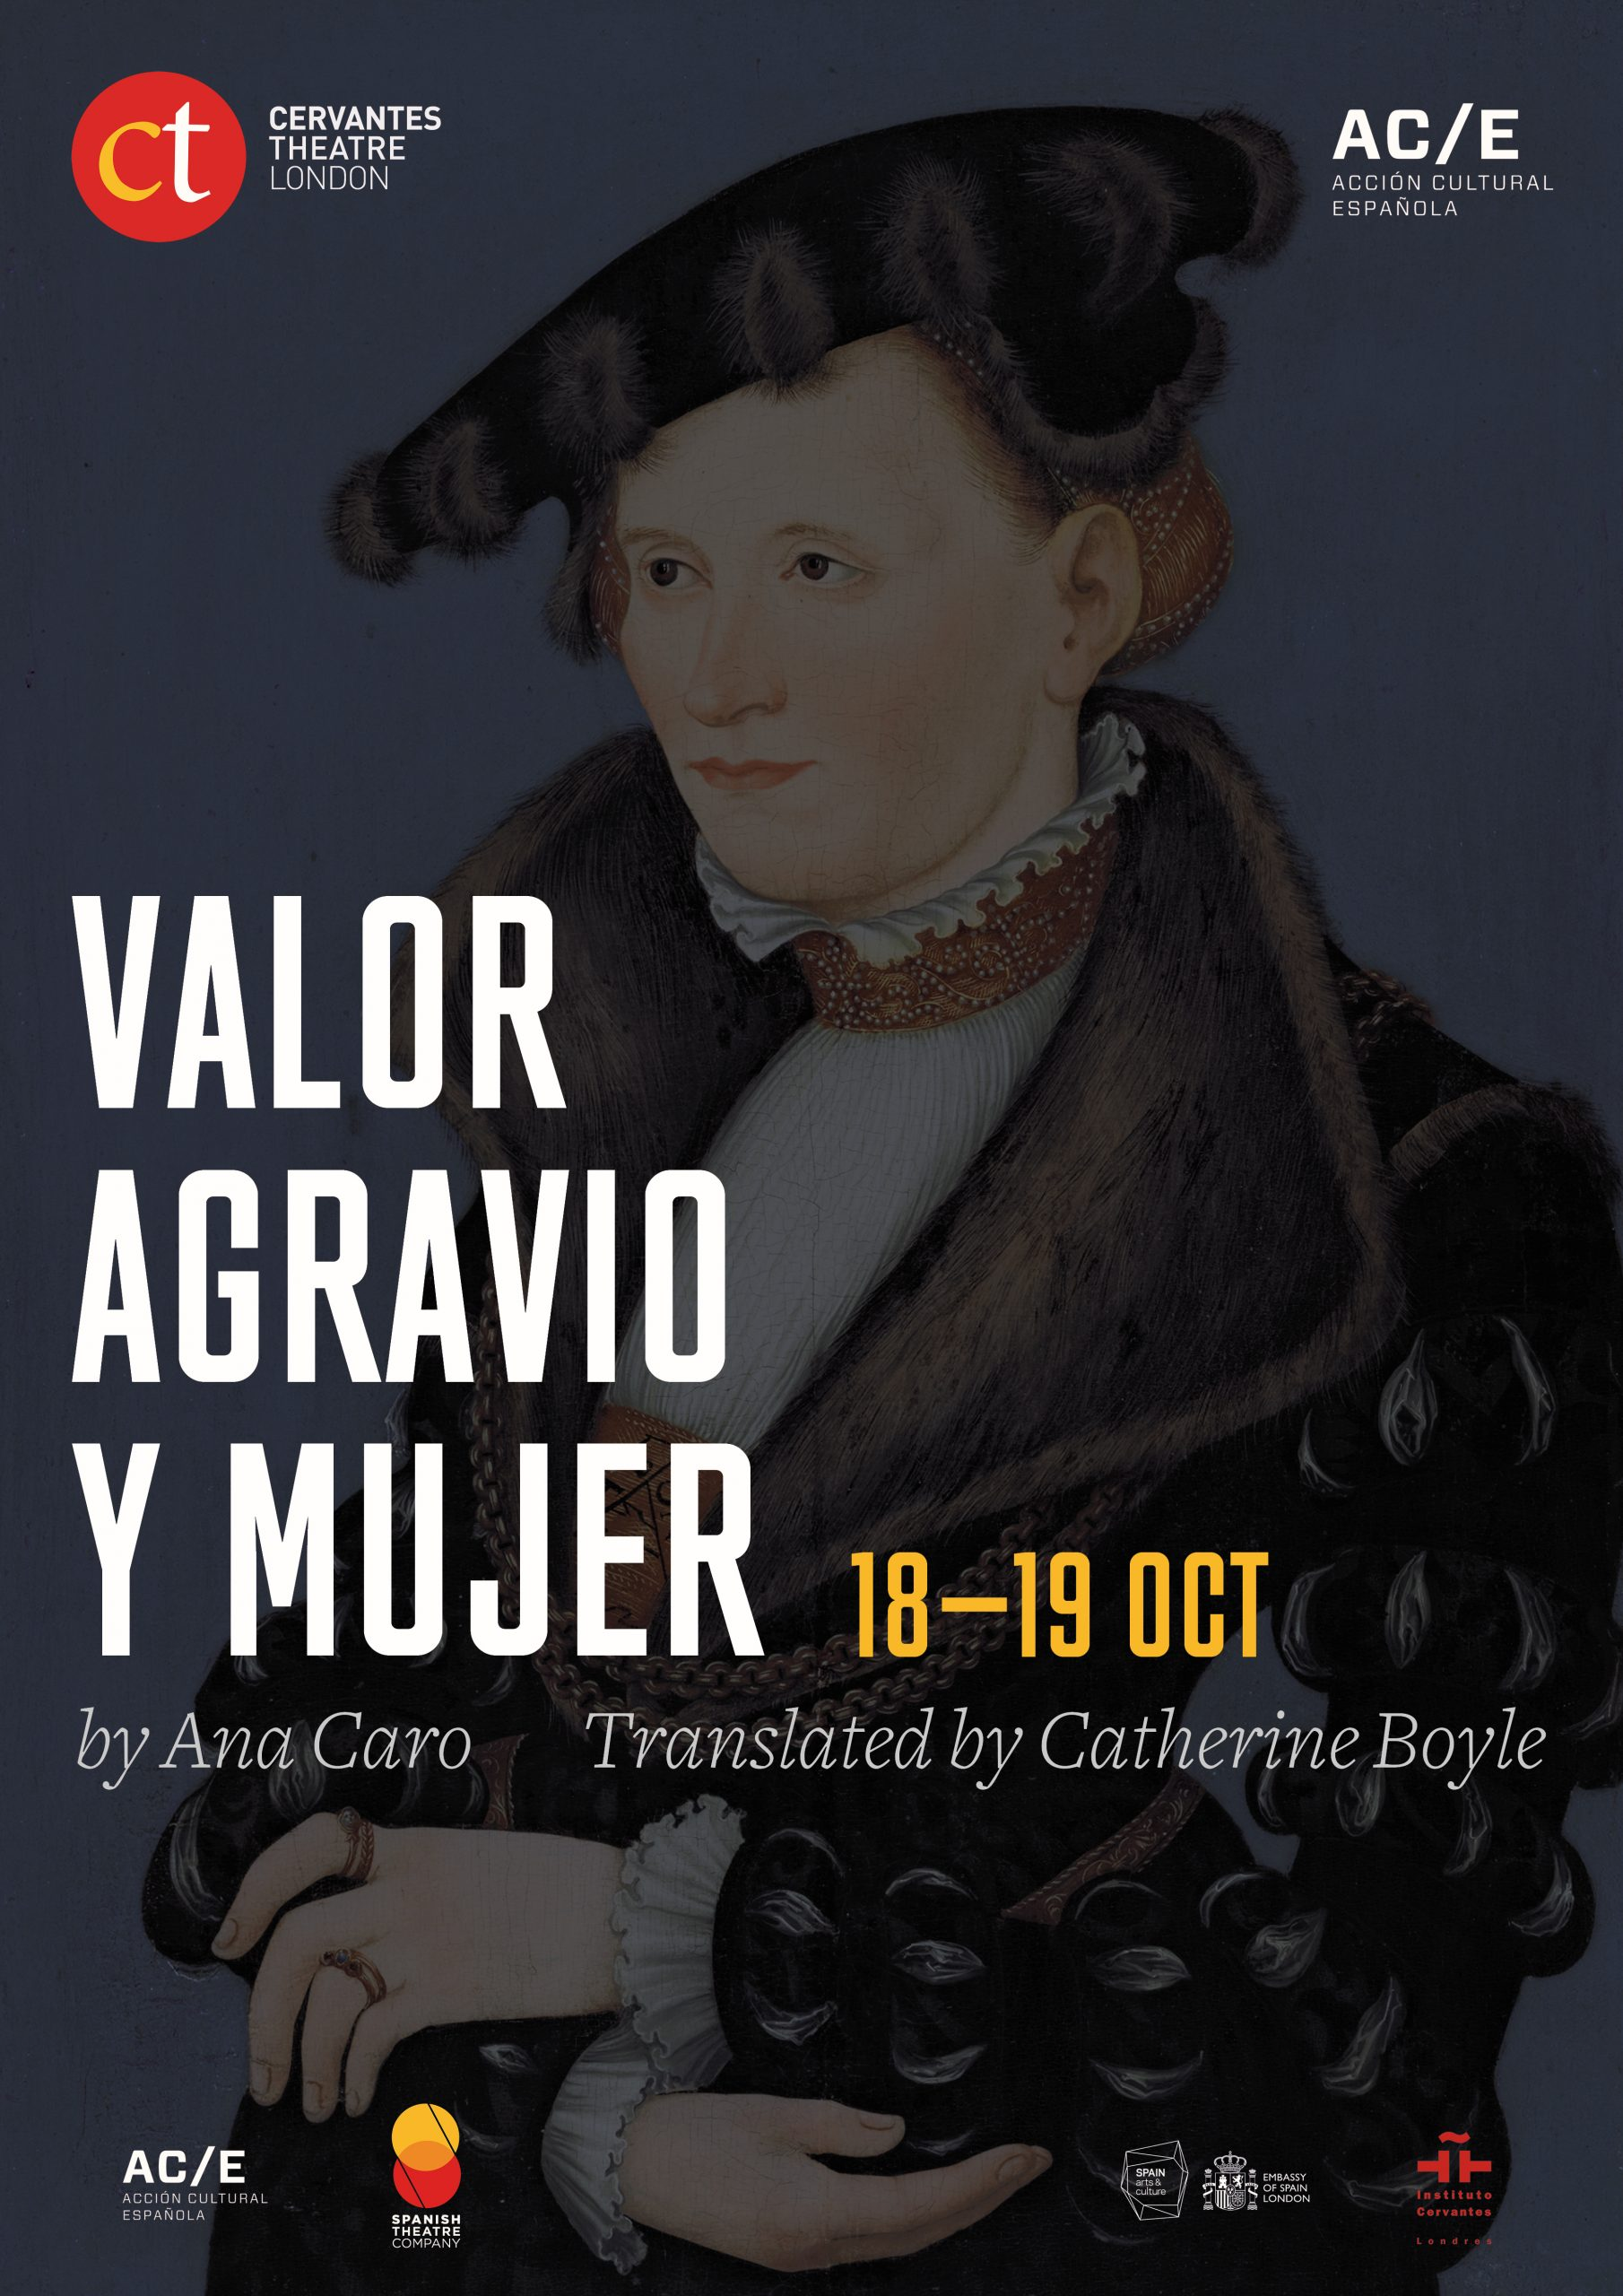 Poster of a the play Courage, Outrage and Women performed as a reading at the Cervantes Theatre on October 18th and 19th 2019